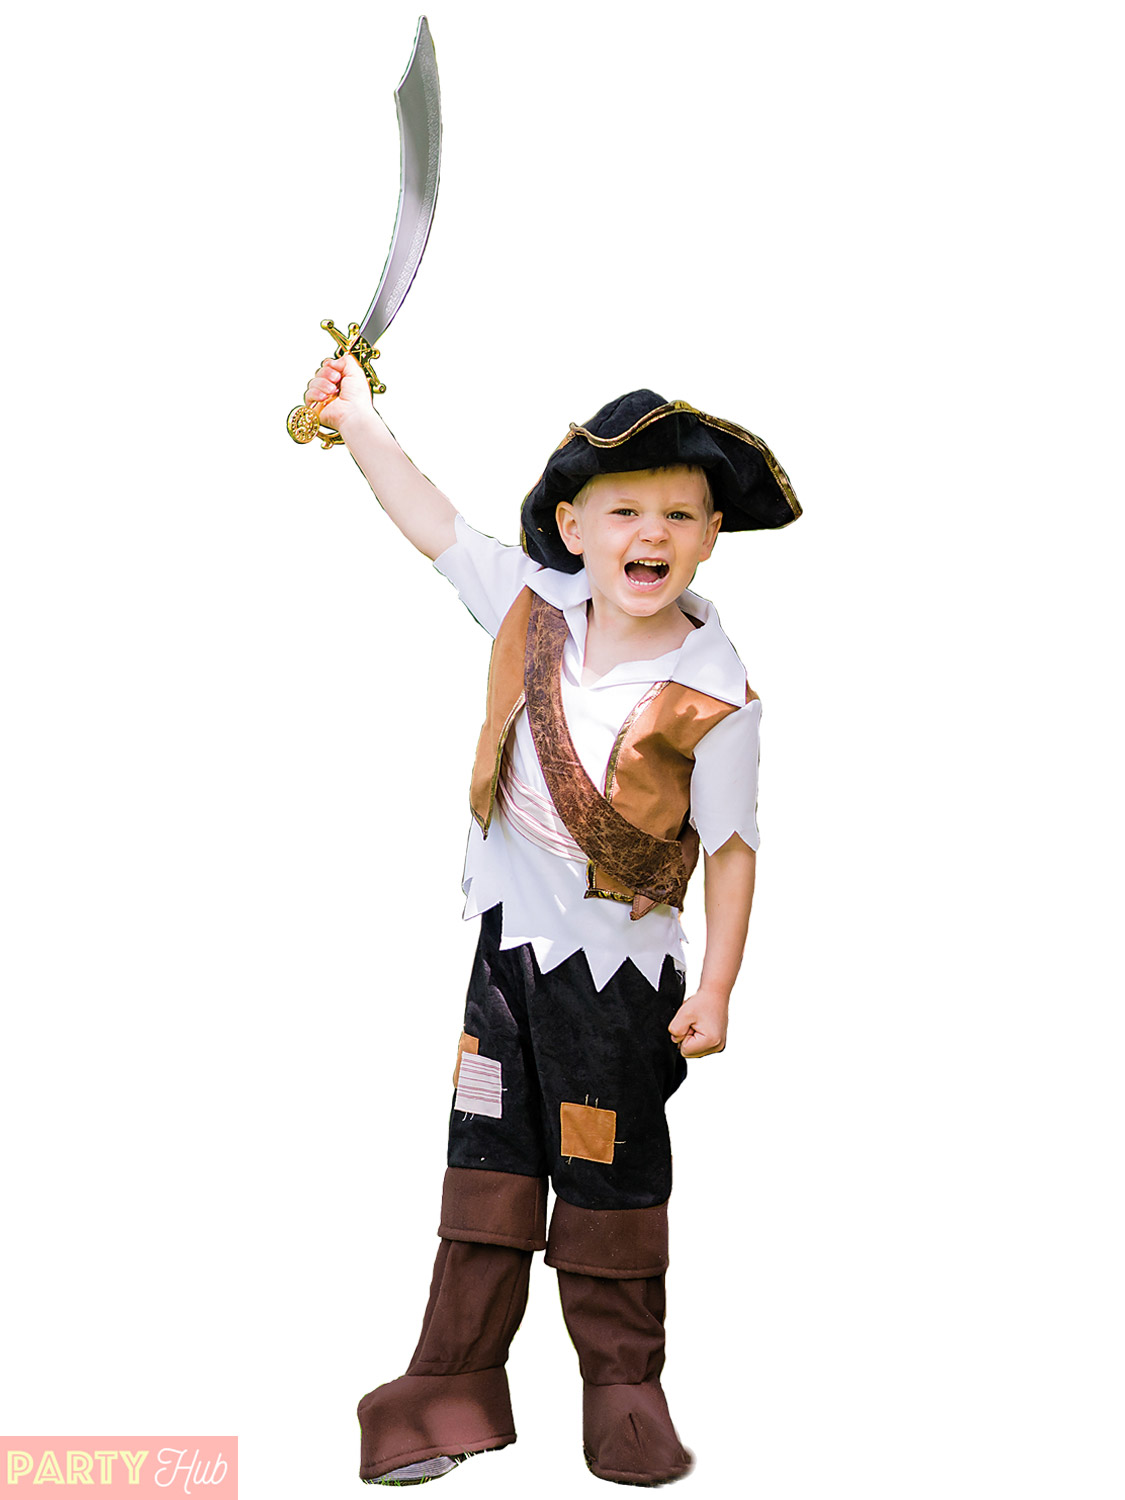 If your kids love Pirates, these costumes will have them ready to explore the oceans. Fancy dress outfits, hooks and eyepatches can be delivered to you faster .